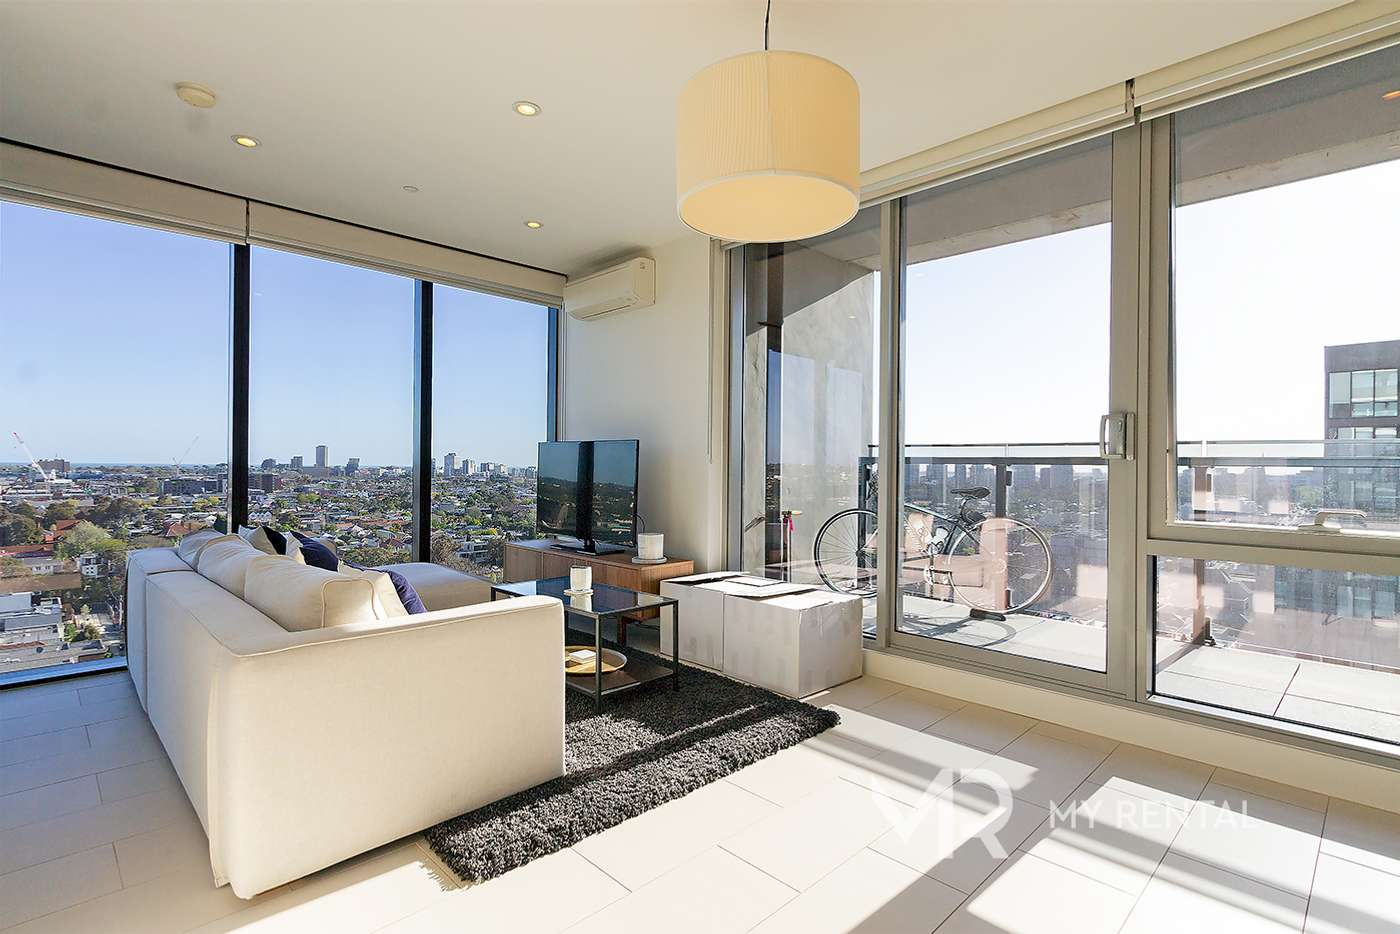 Main view of Homely apartment listing, 1507/229 Toorak Road, South Yarra VIC 3141